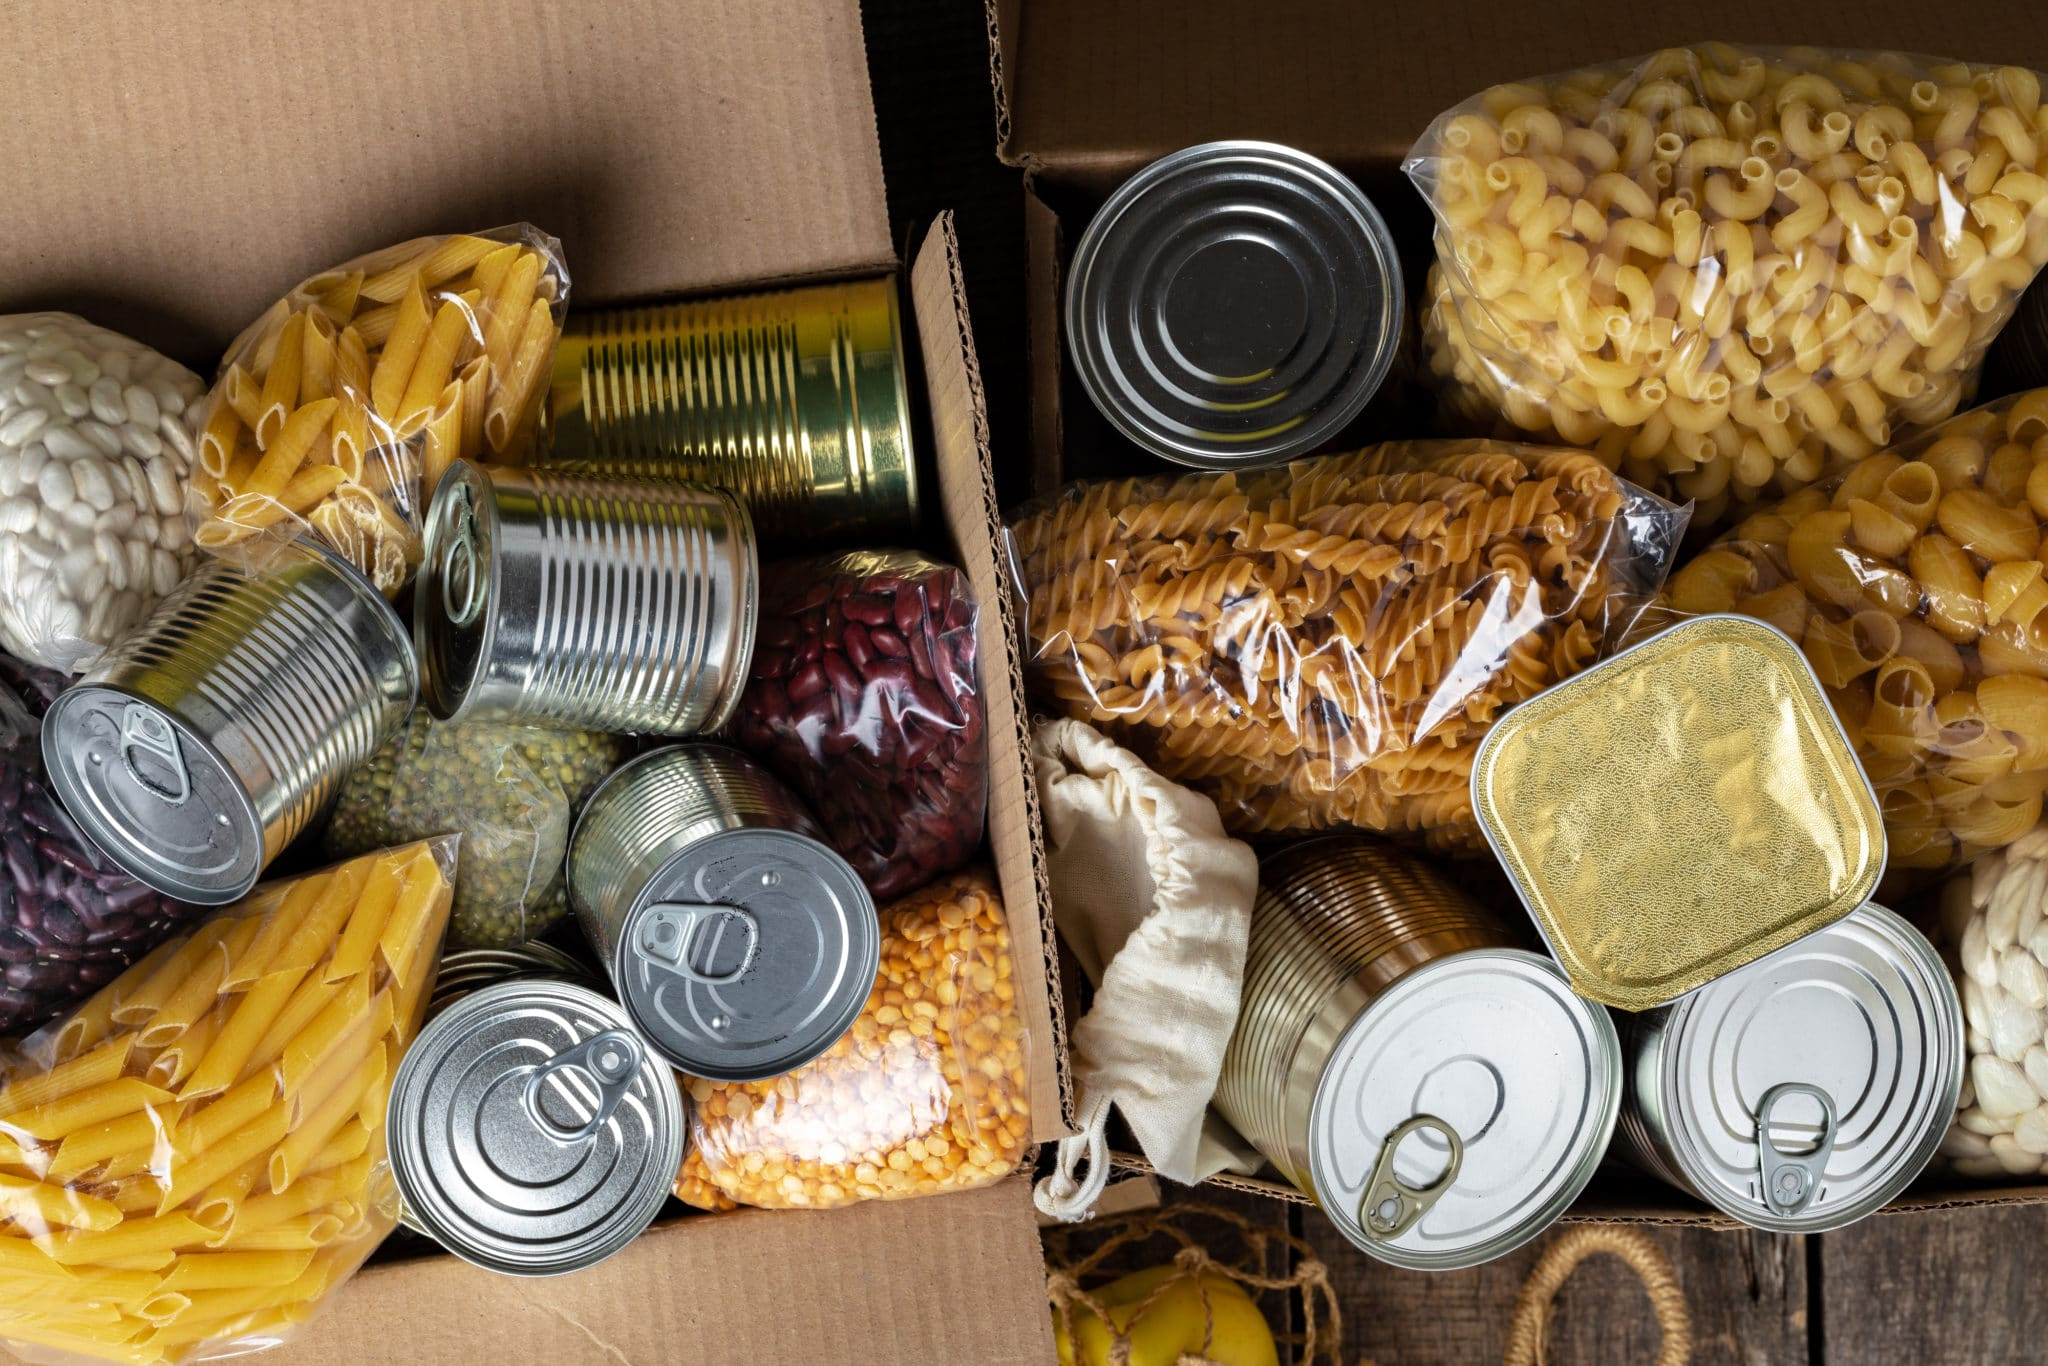 Boxes filled with canned goods and whole grains